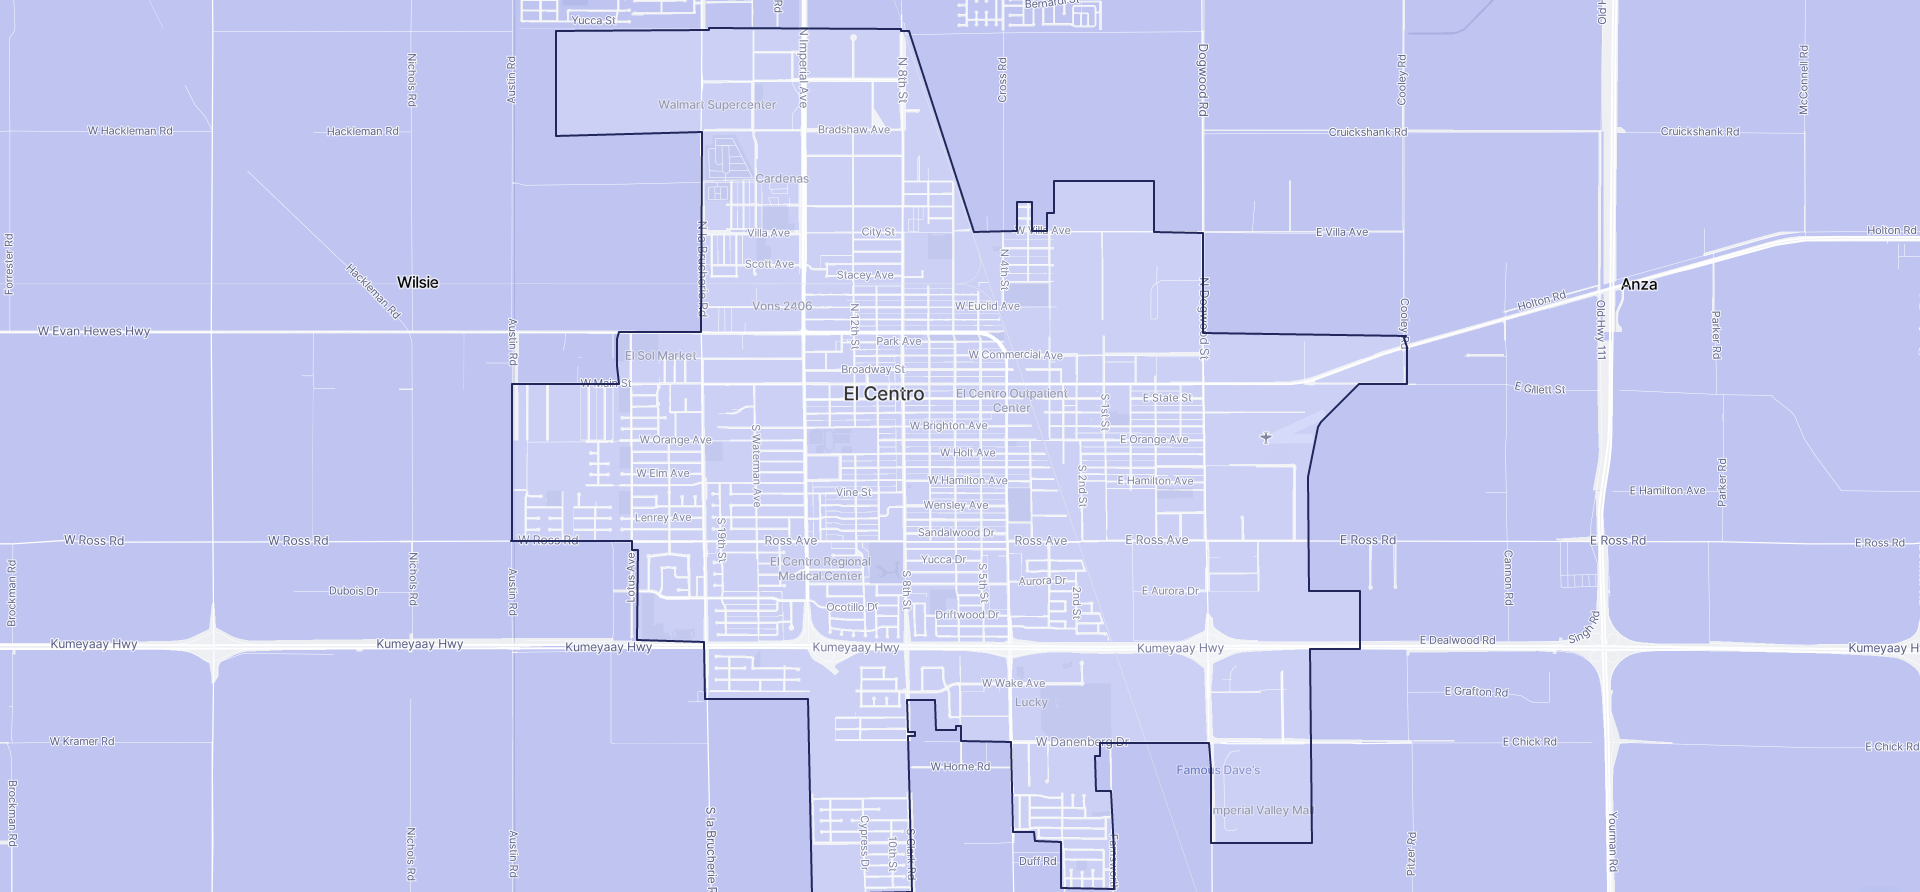 Image of El Centro boundaries on a map.